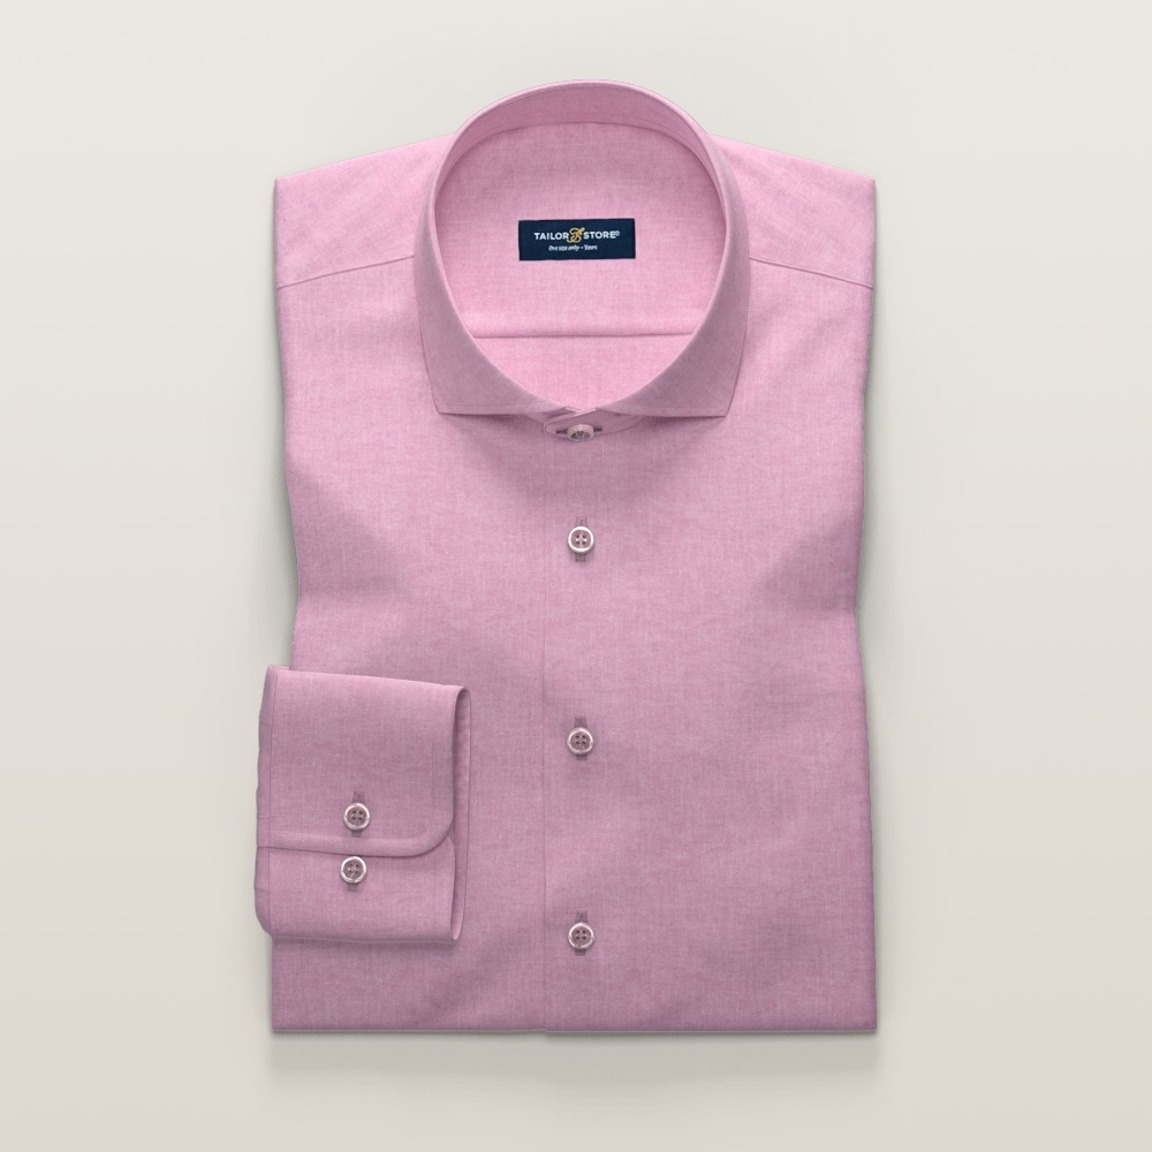 Light pink dress shirt in cotton/linen